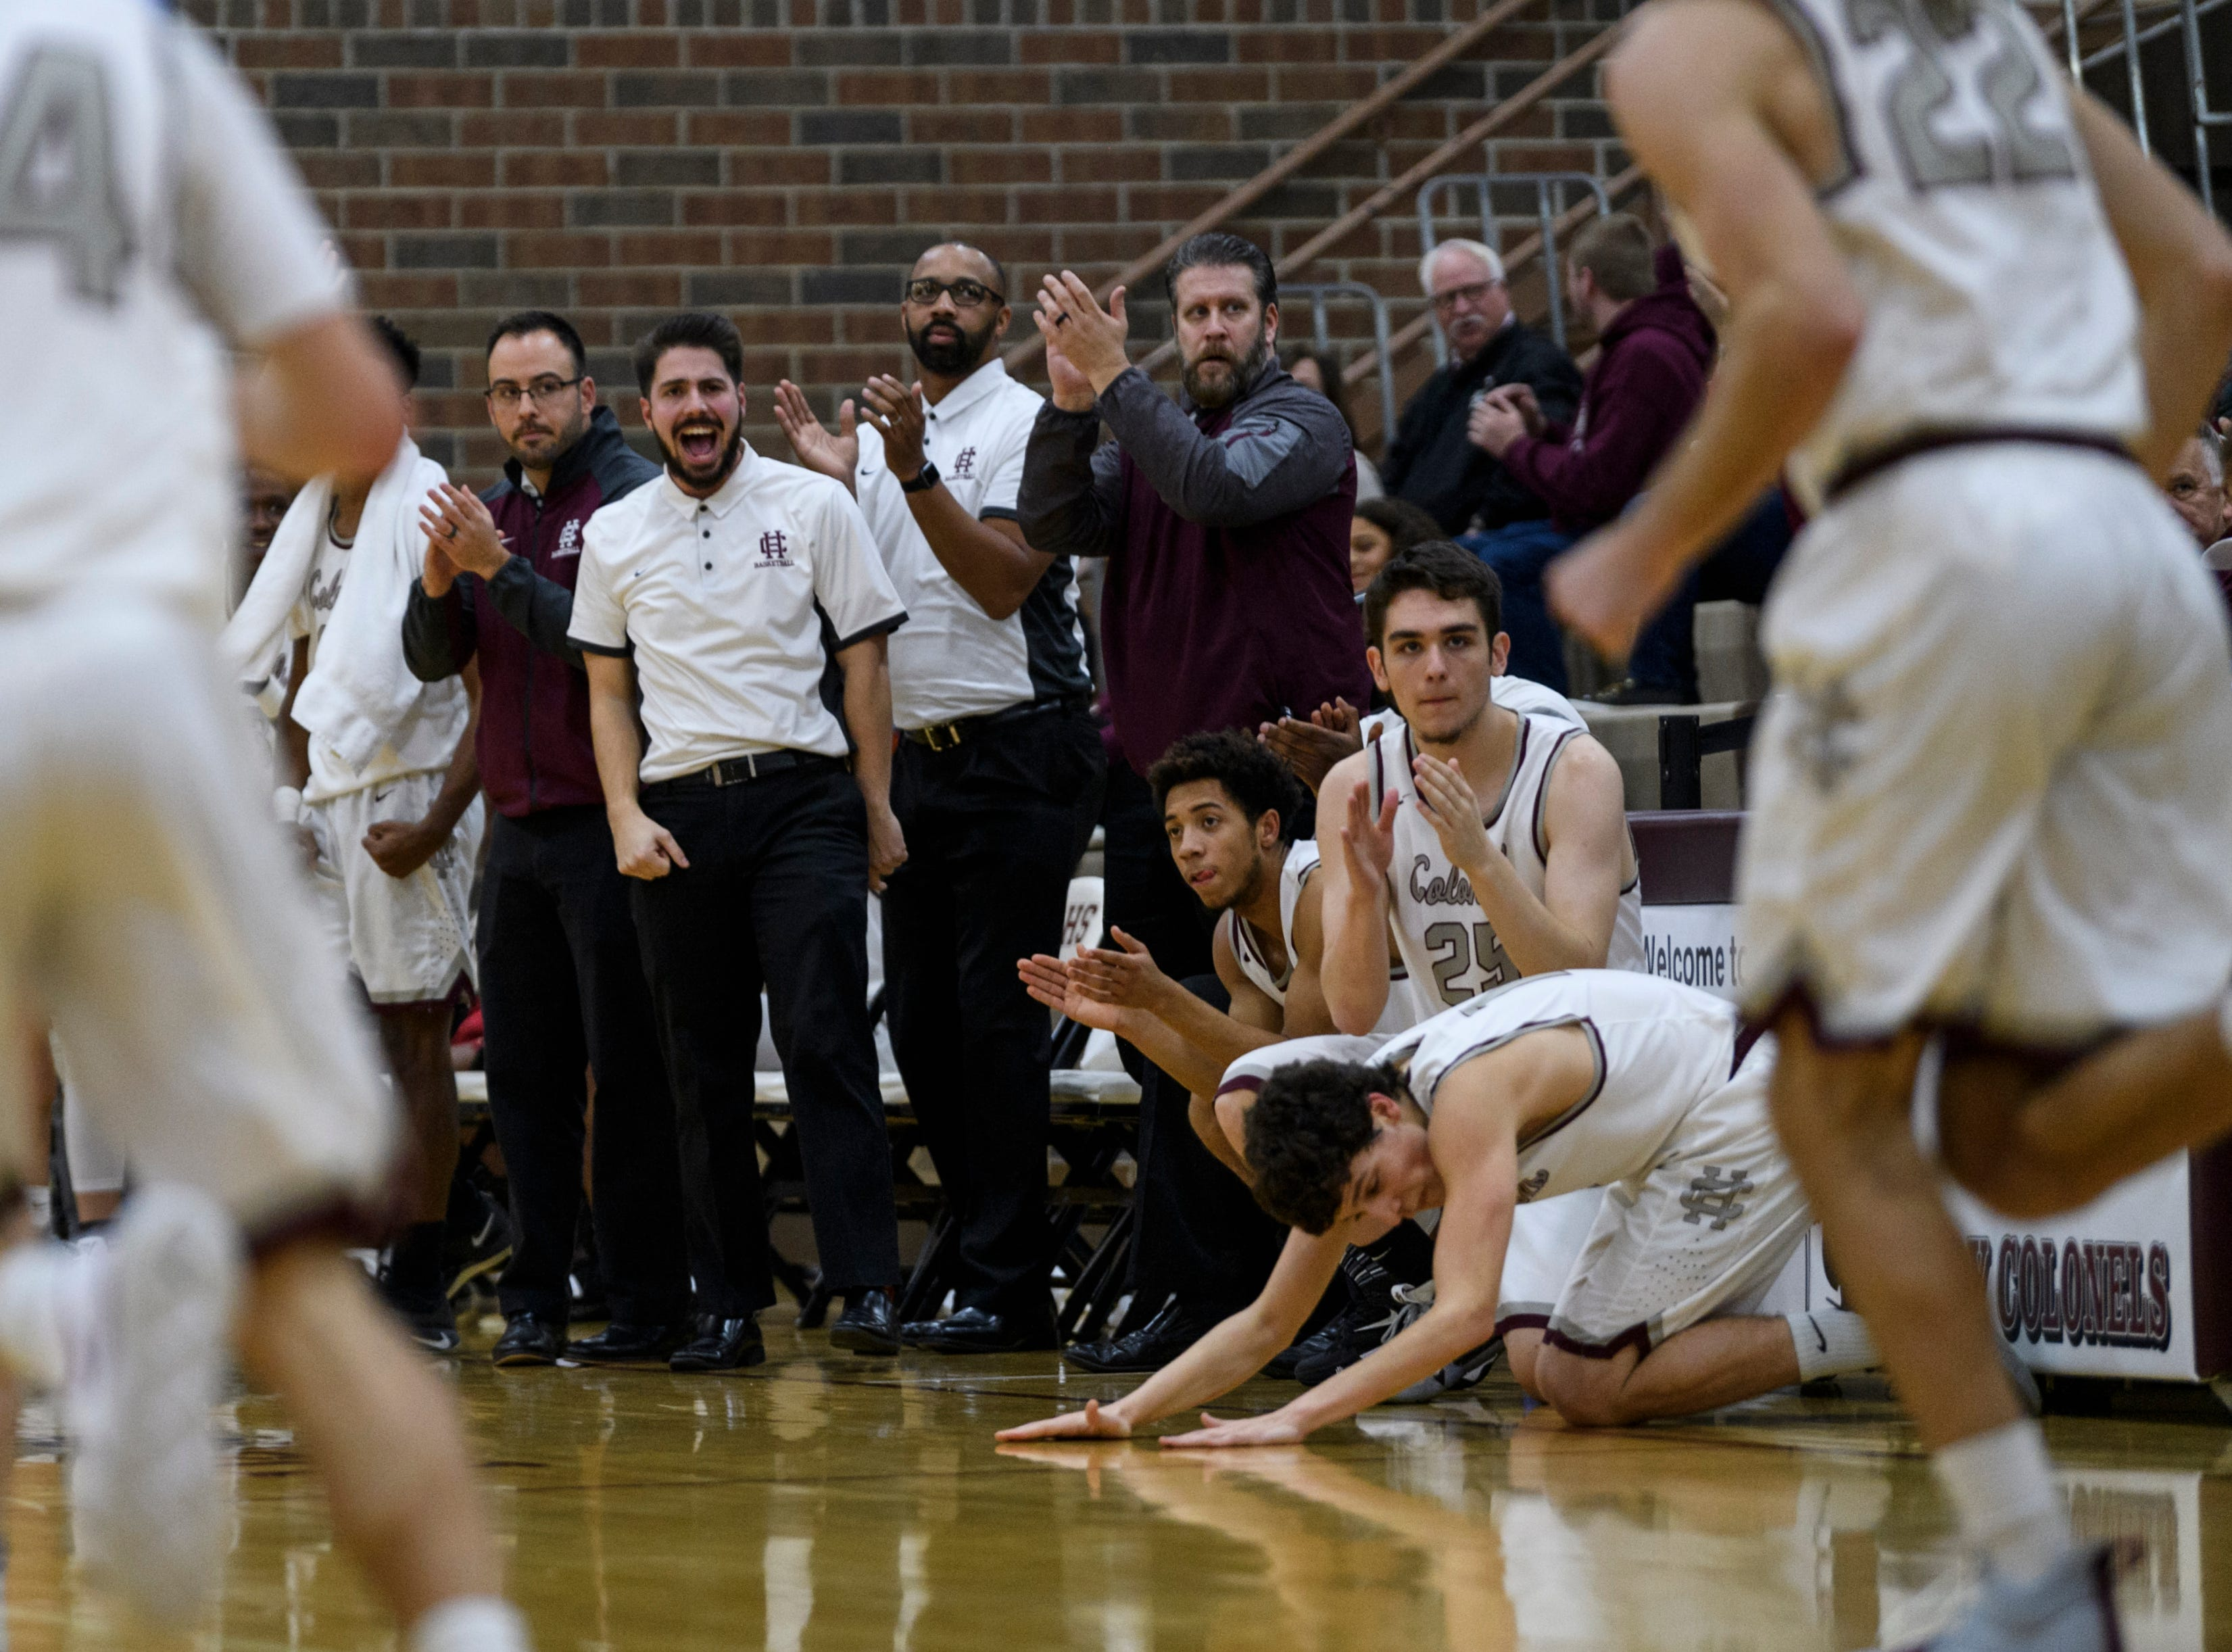 The Henderson County Colonels bench reacts to Henderson's Nick Cissell (22) making a three-pointer at the end of the first quarter against the Crittenden County Rockets at Henderson County High School in Henderson, Ky., Tuesday, Dec. 18, 2018. The Colonels defeated the Rockets 88-52.